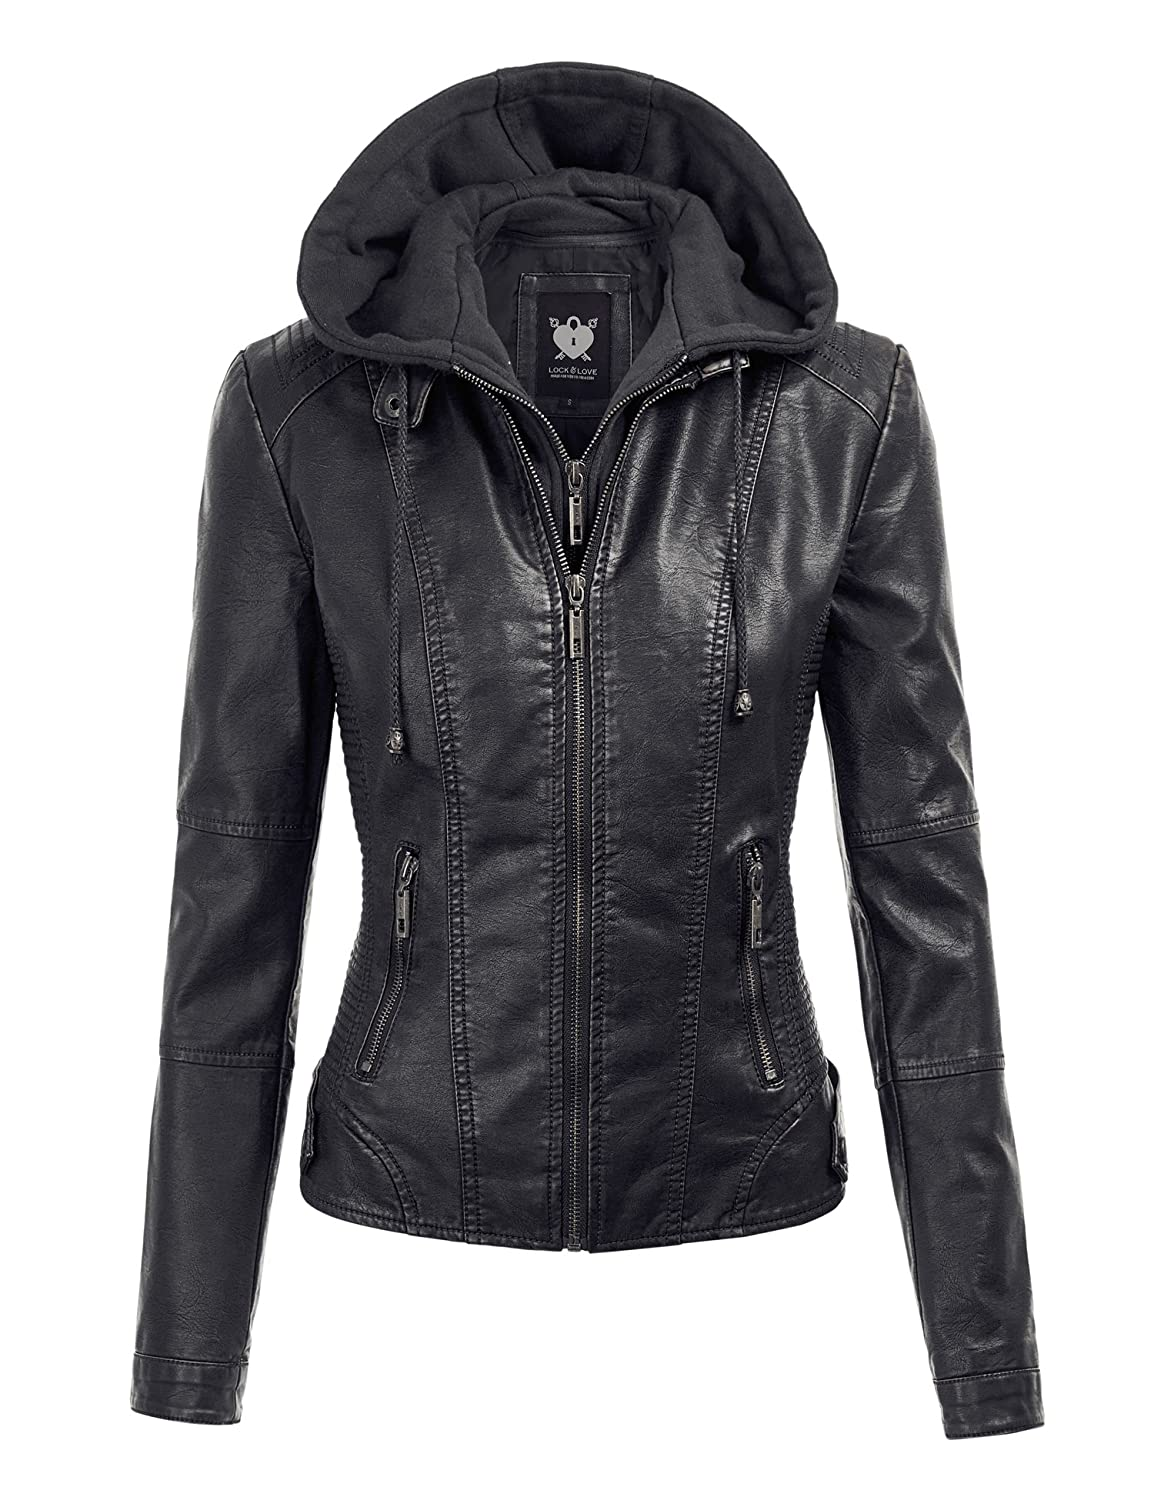 Womens hooded leather jacket sale